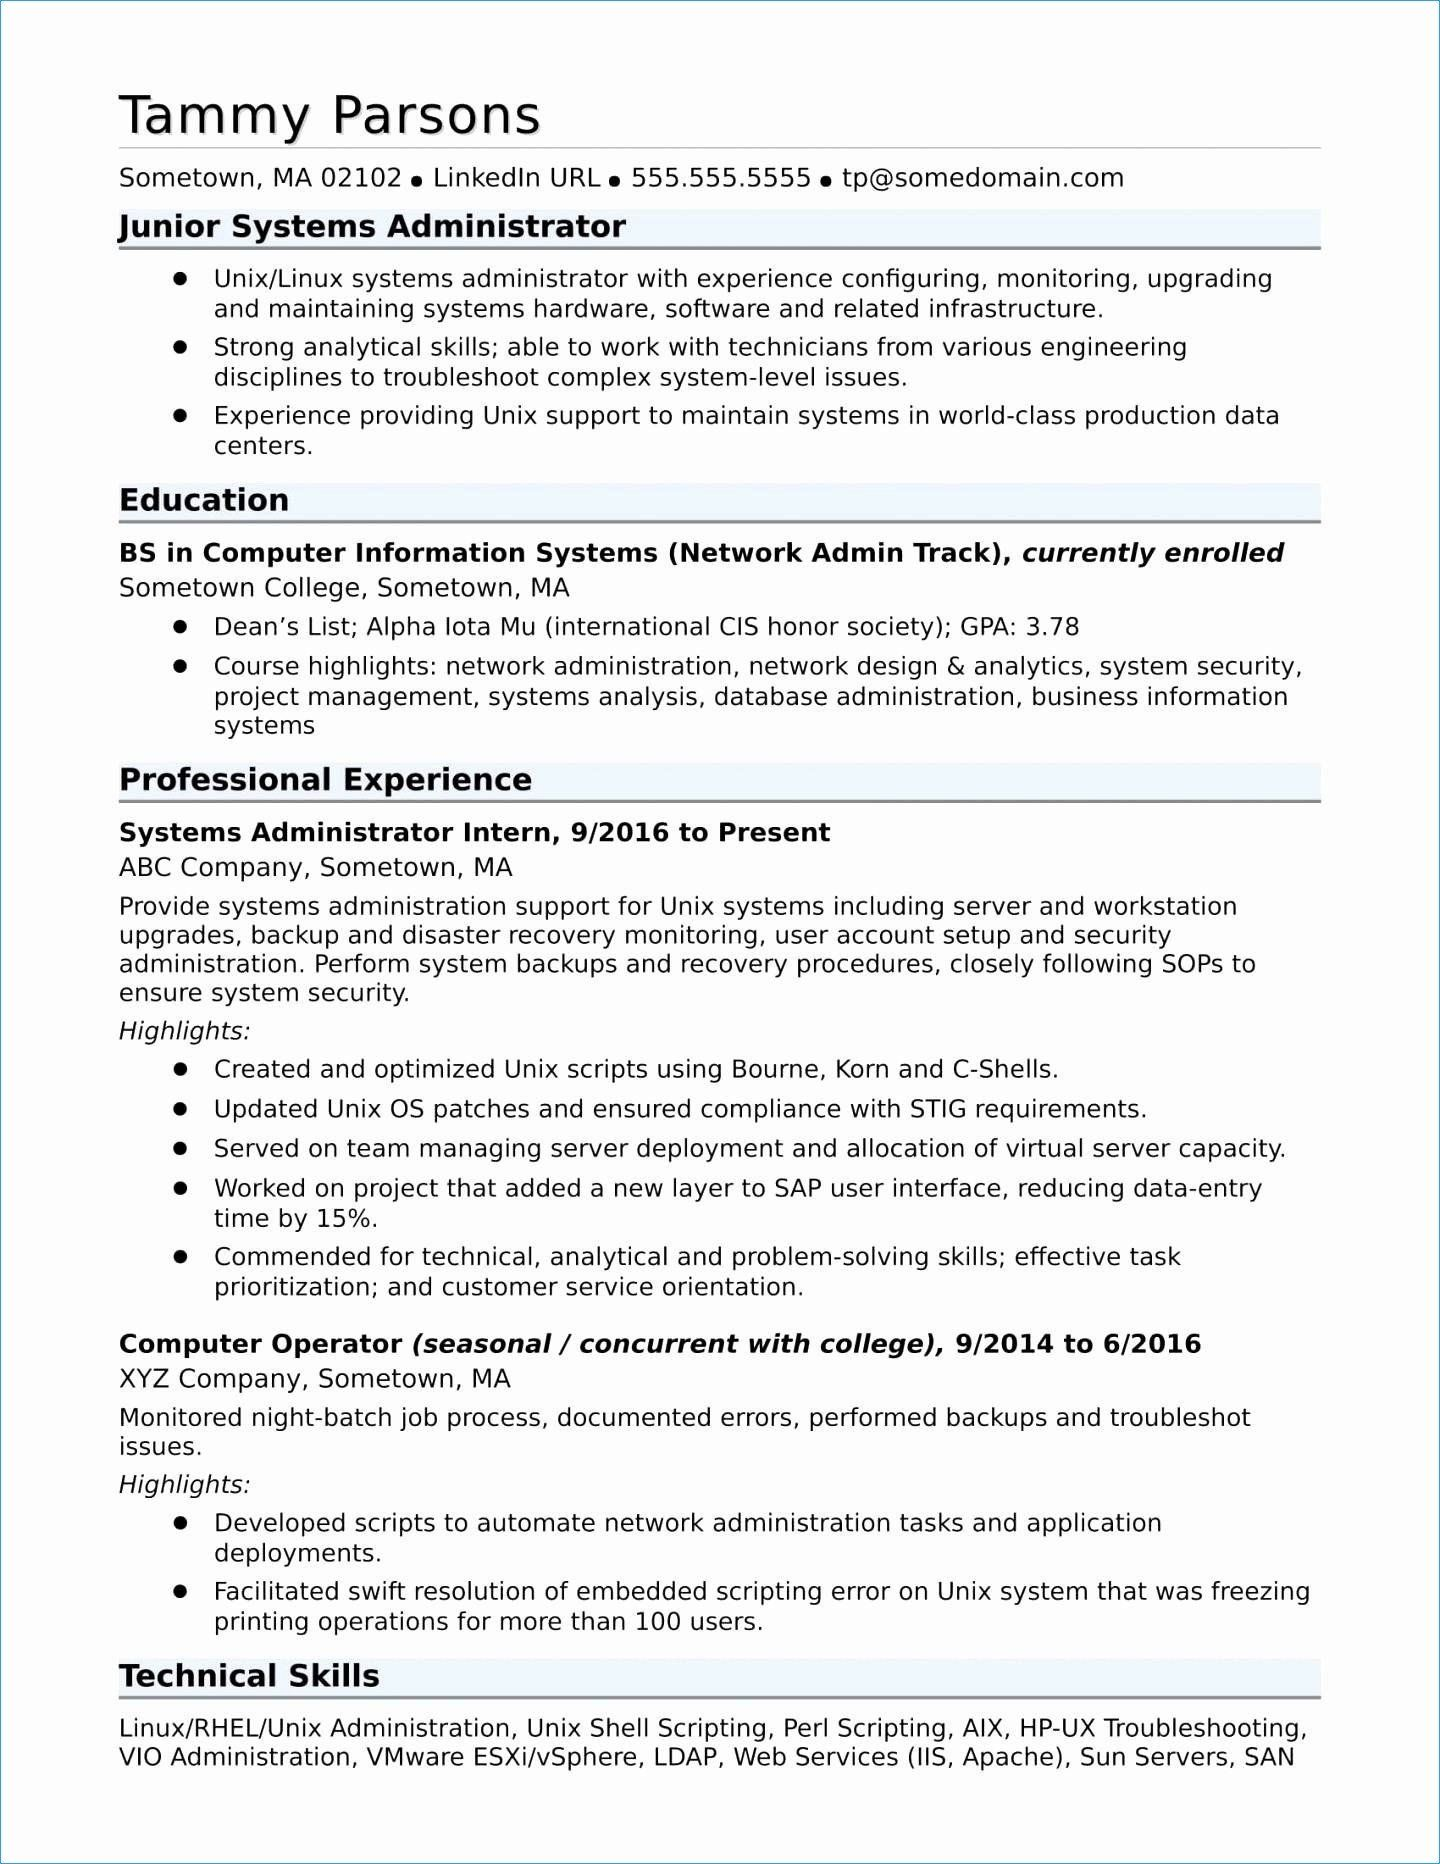 32 Lovely Listing Gpa On Resume In 2020 Resume Resume Skills